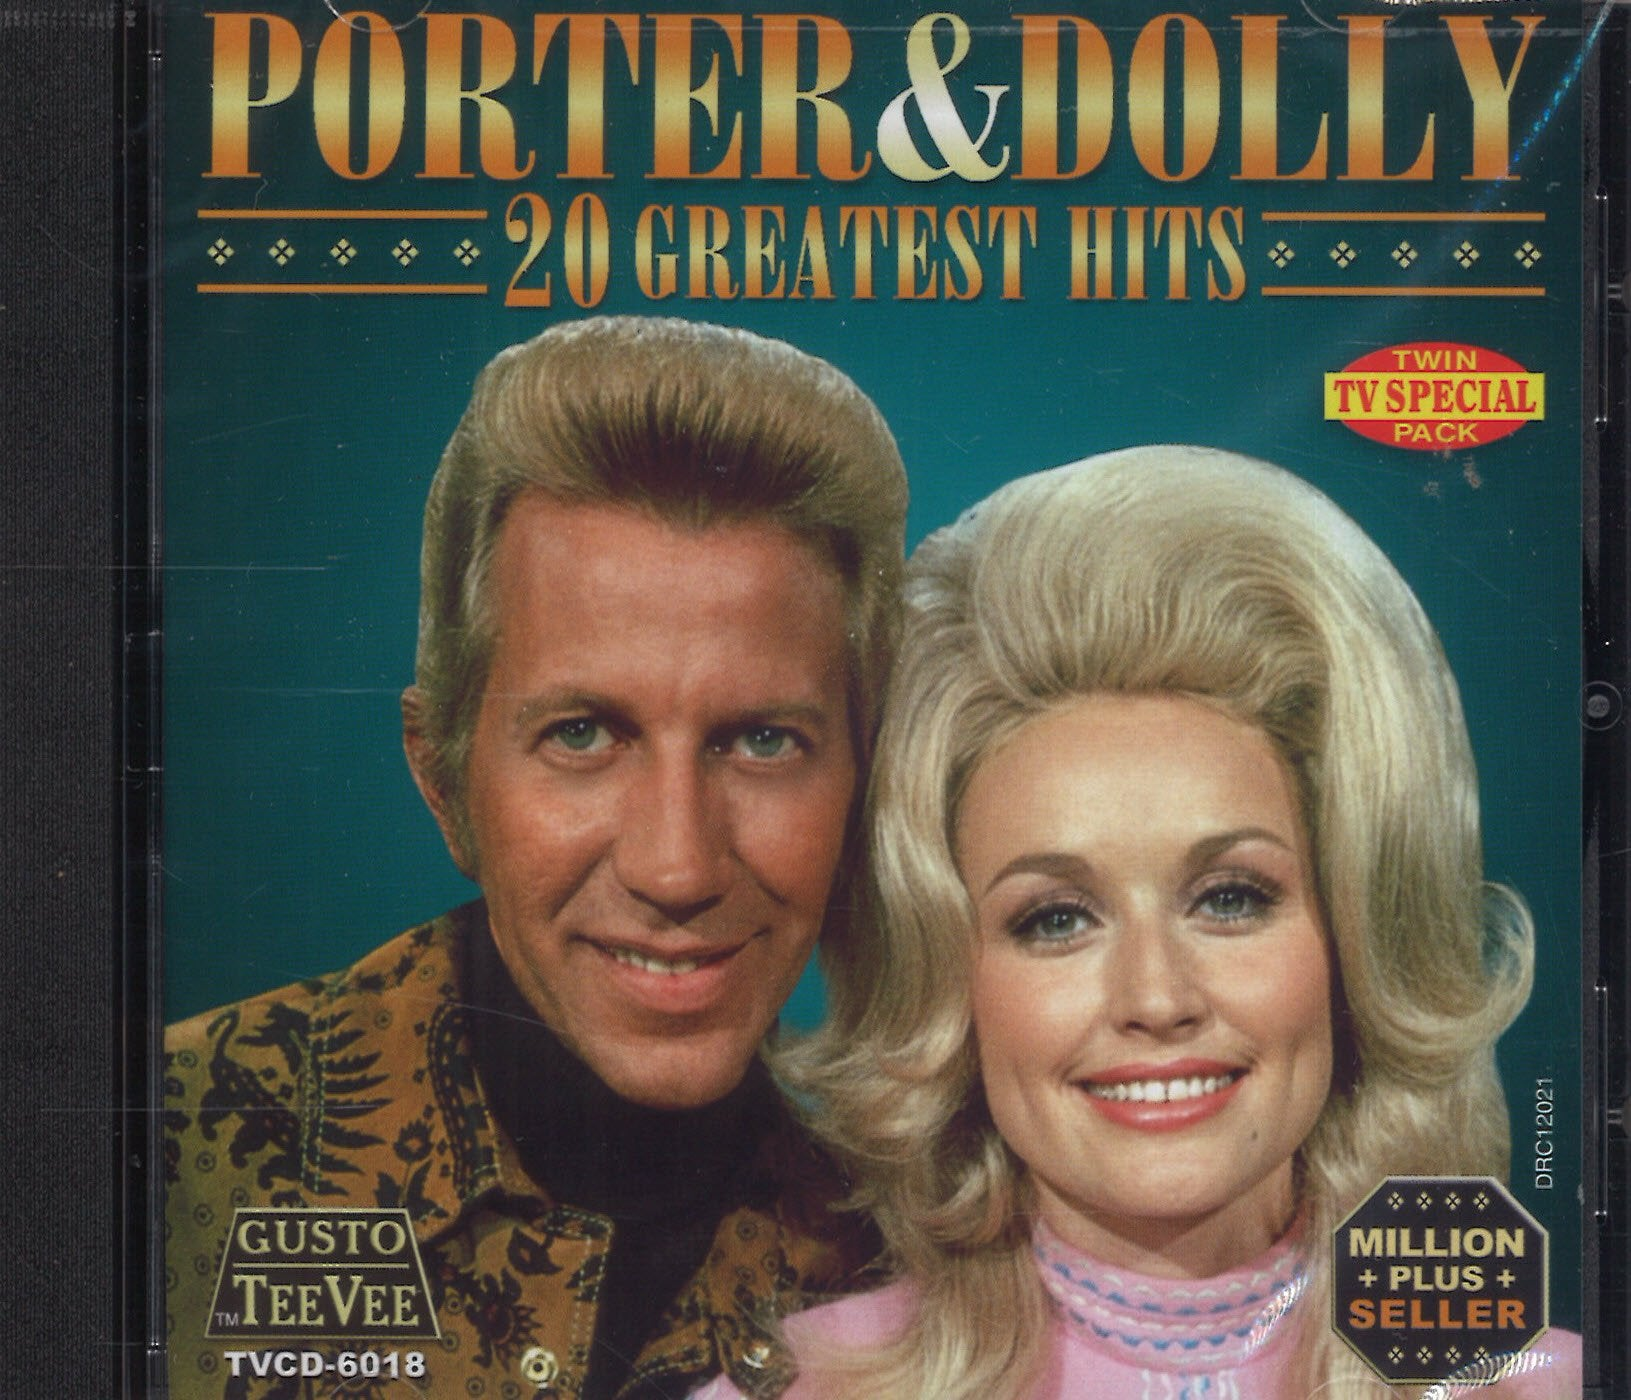 Porter & Dolly 20 Greatest Hits